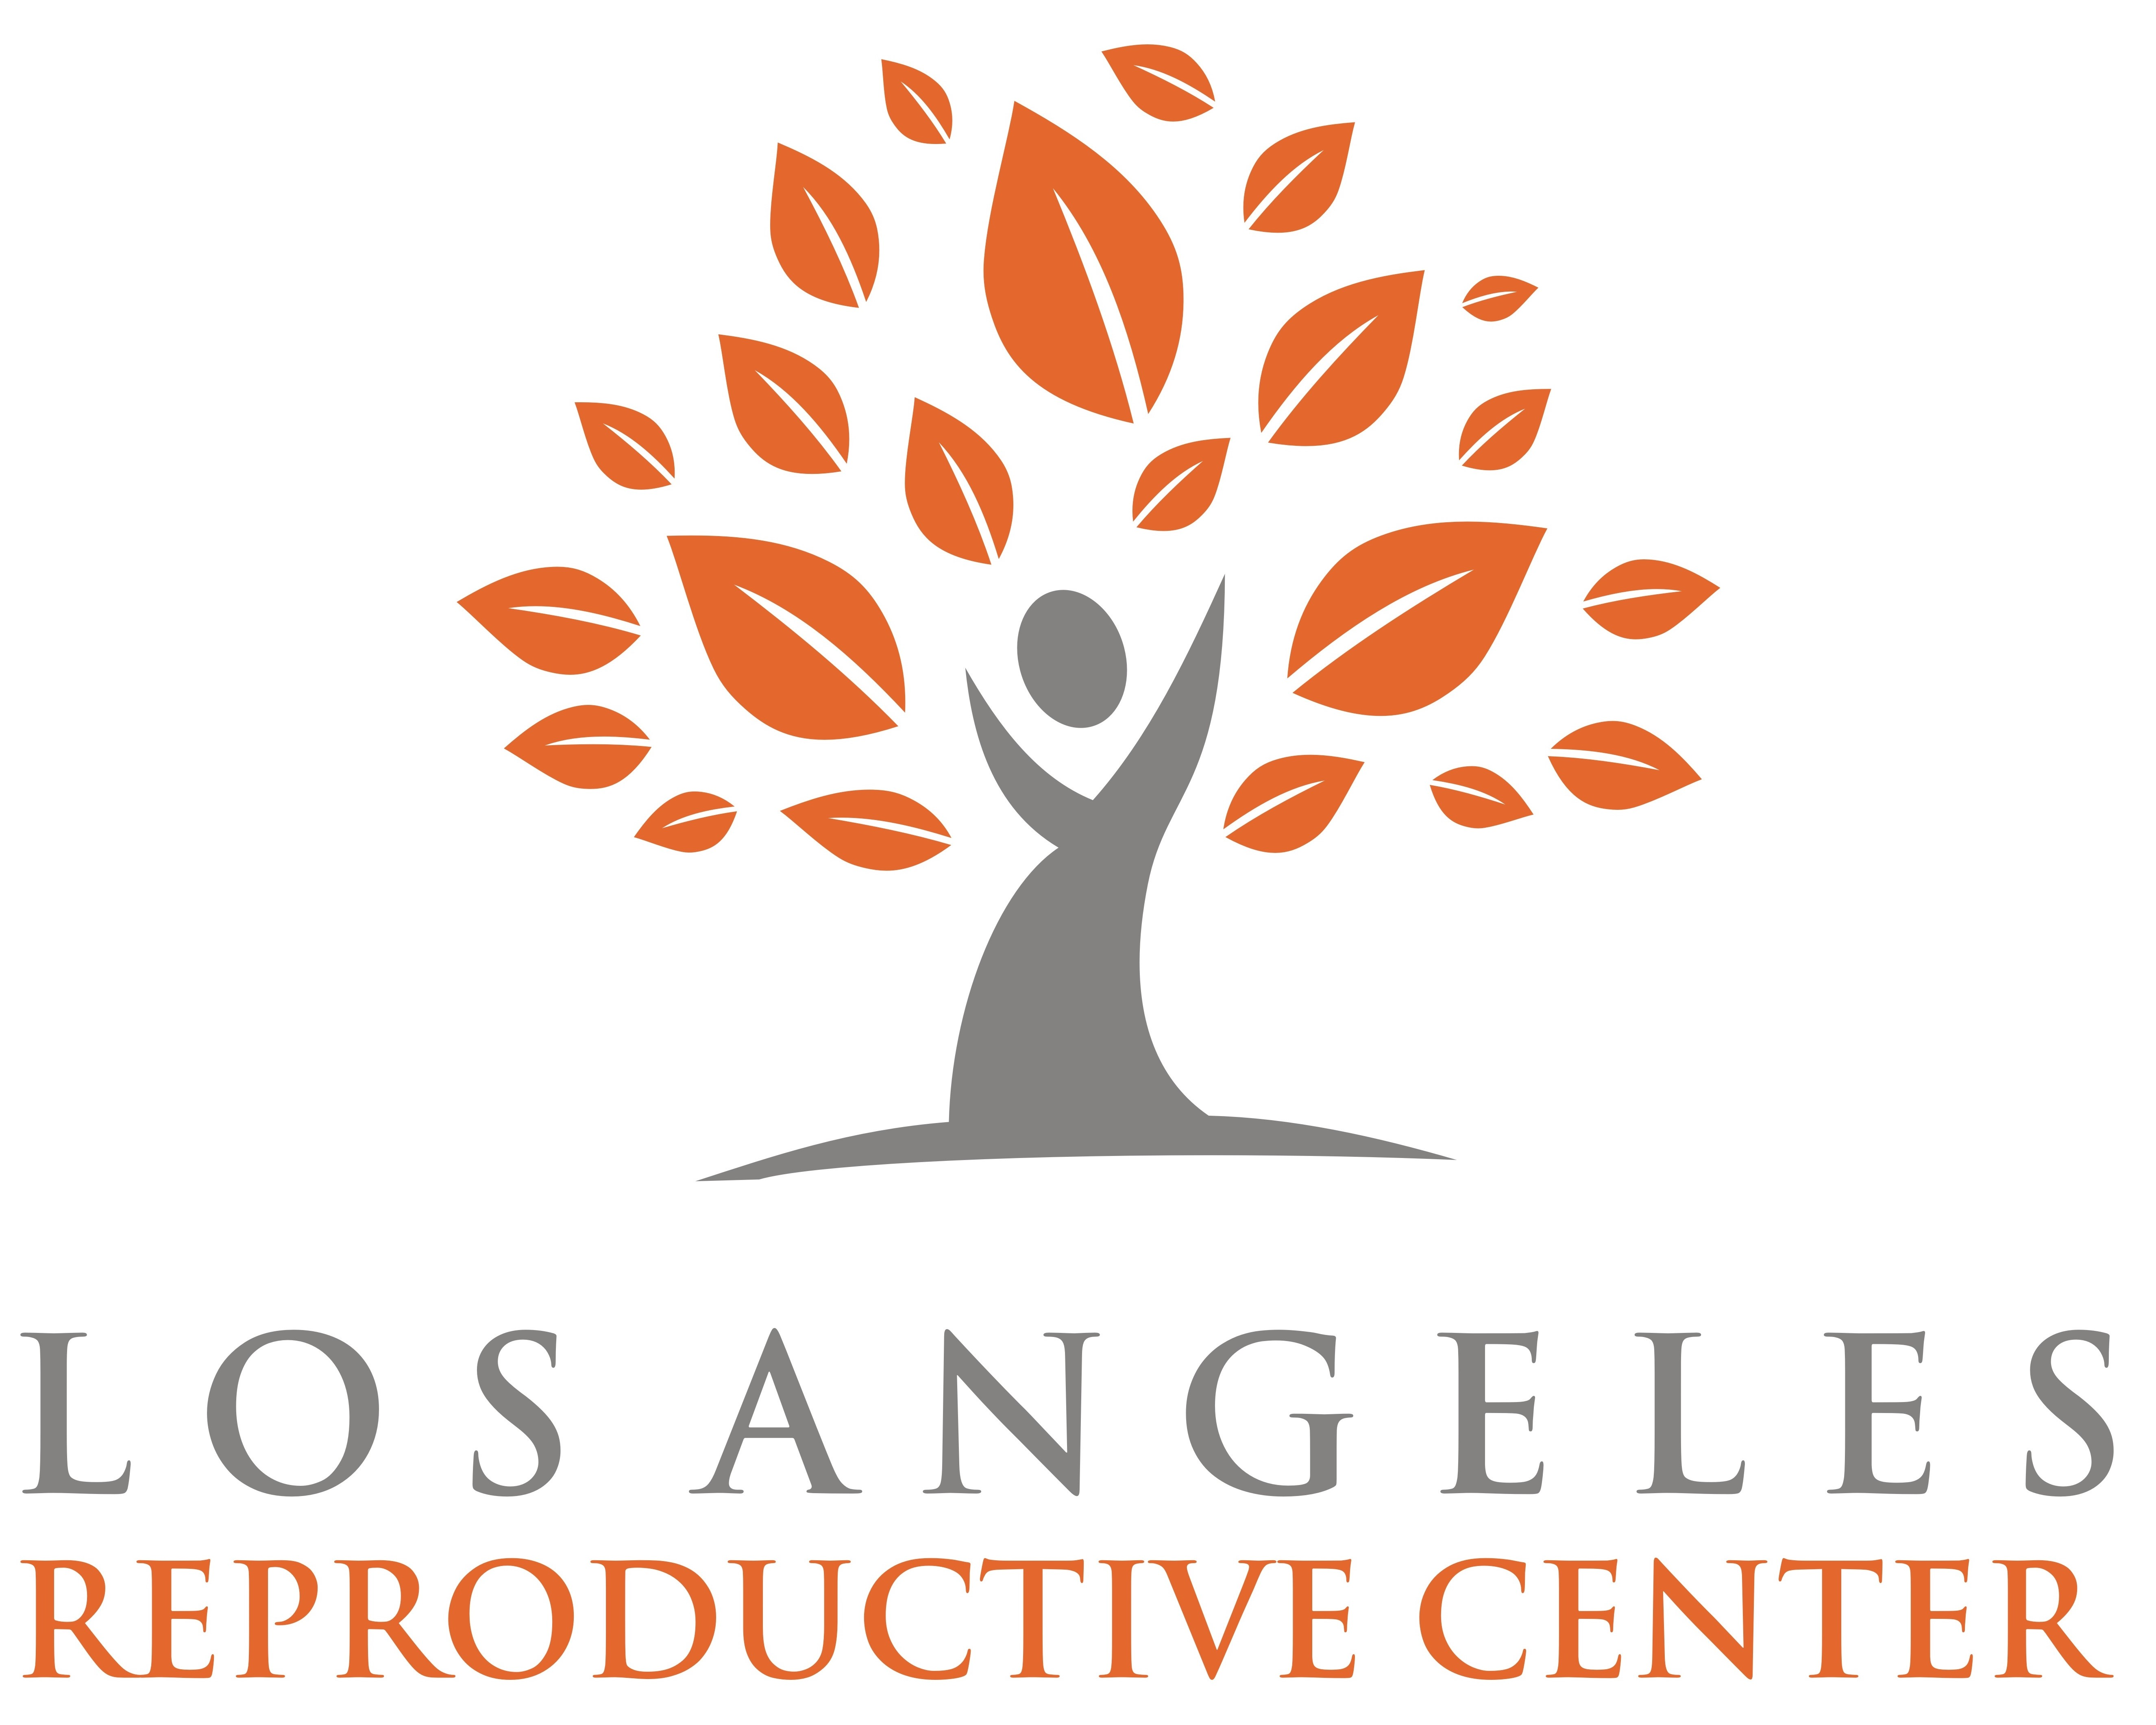 Los Angeles Reproductive Center